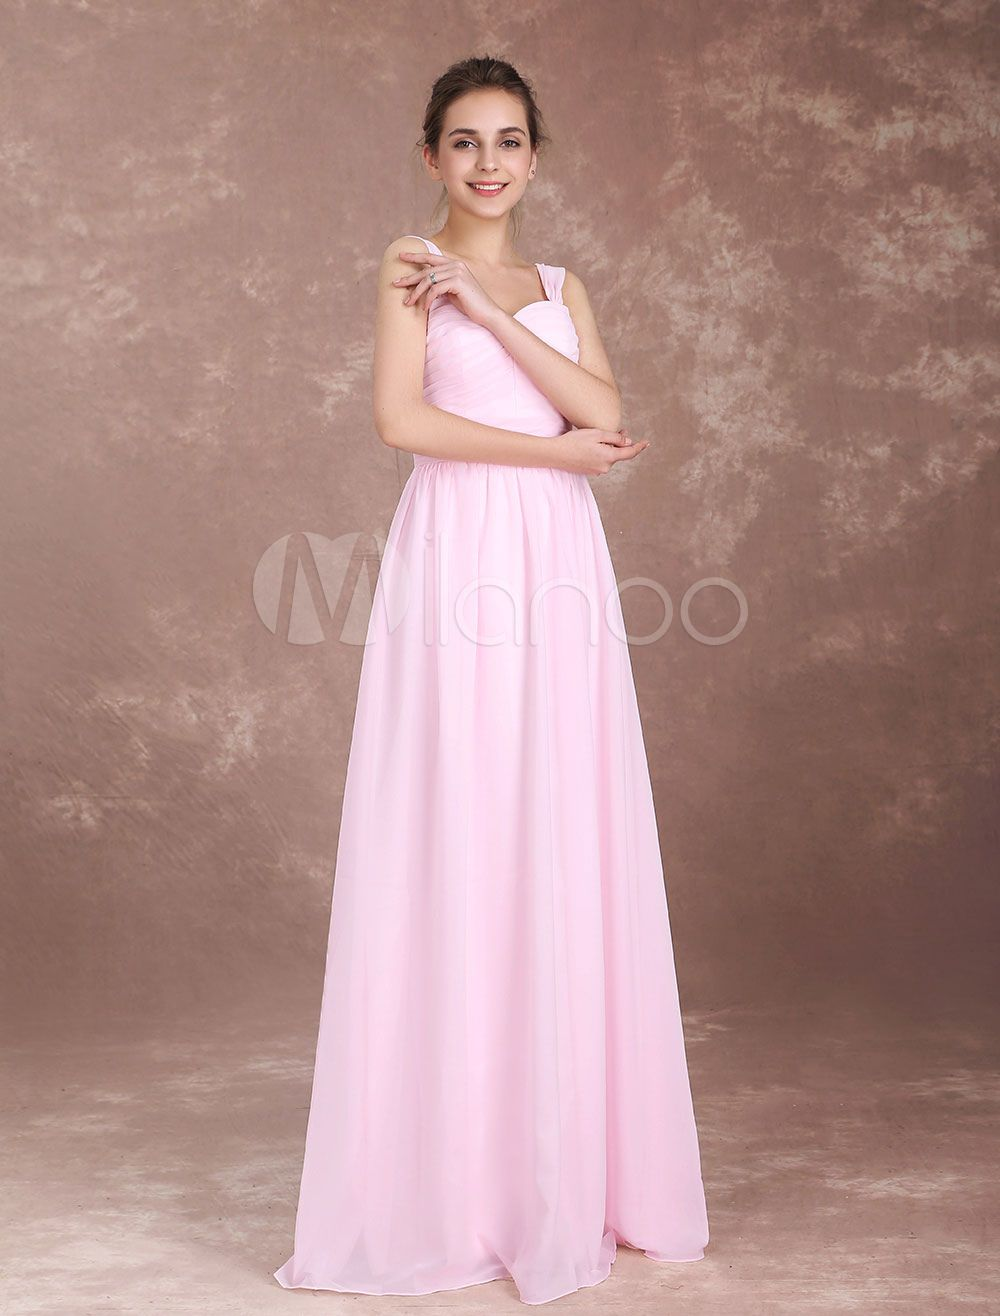 Bridesmaid Dresses Soft Pink Long Wide Straps Pleated Chiffon Sweetheart Neckline Floor Length Prom Dress